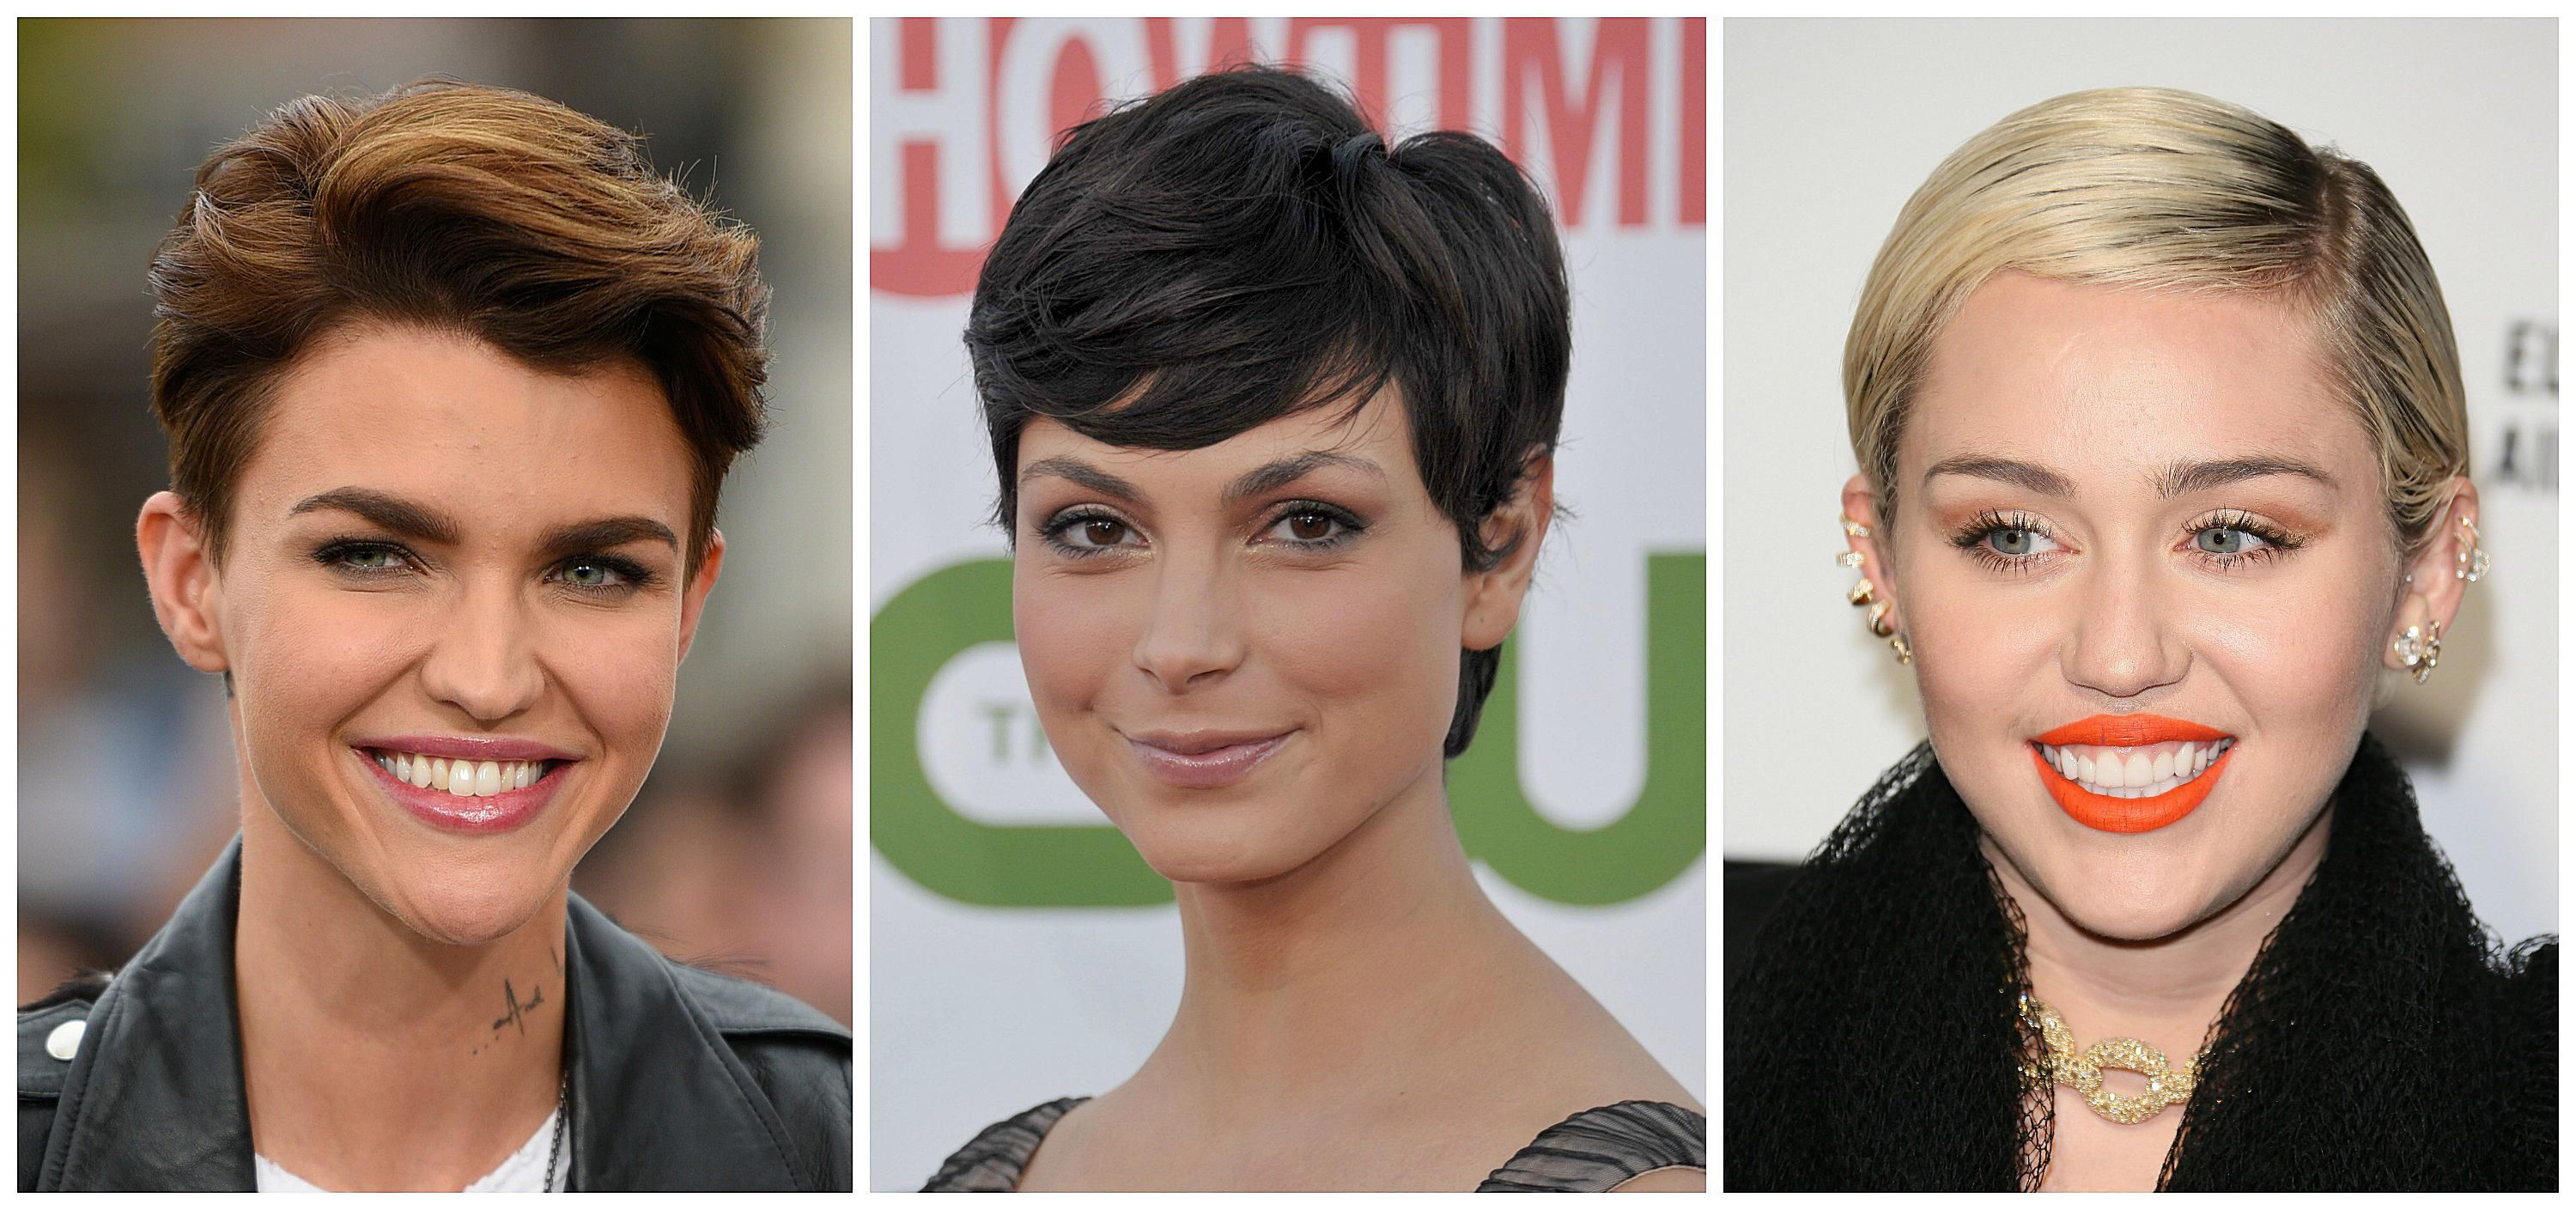 5 Hairstyles For Short Hair Erin Rose: Short, Edgy Hairstyles: My Favorite Cuts